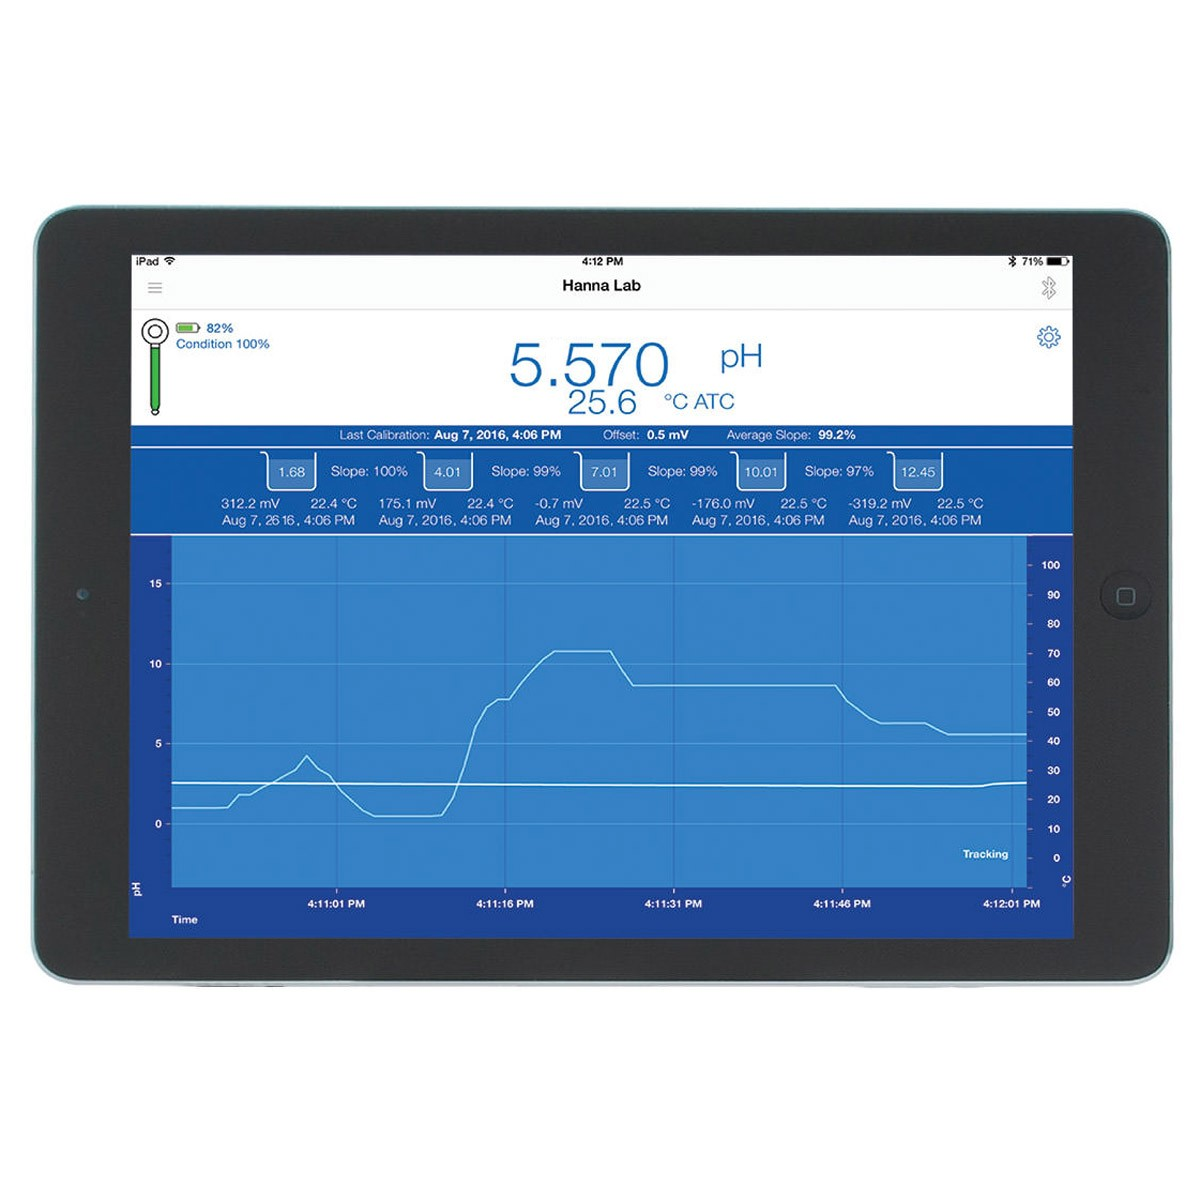 ph-dynamic-graphing-ipad-screen-hanna-lab-app_6.jpg